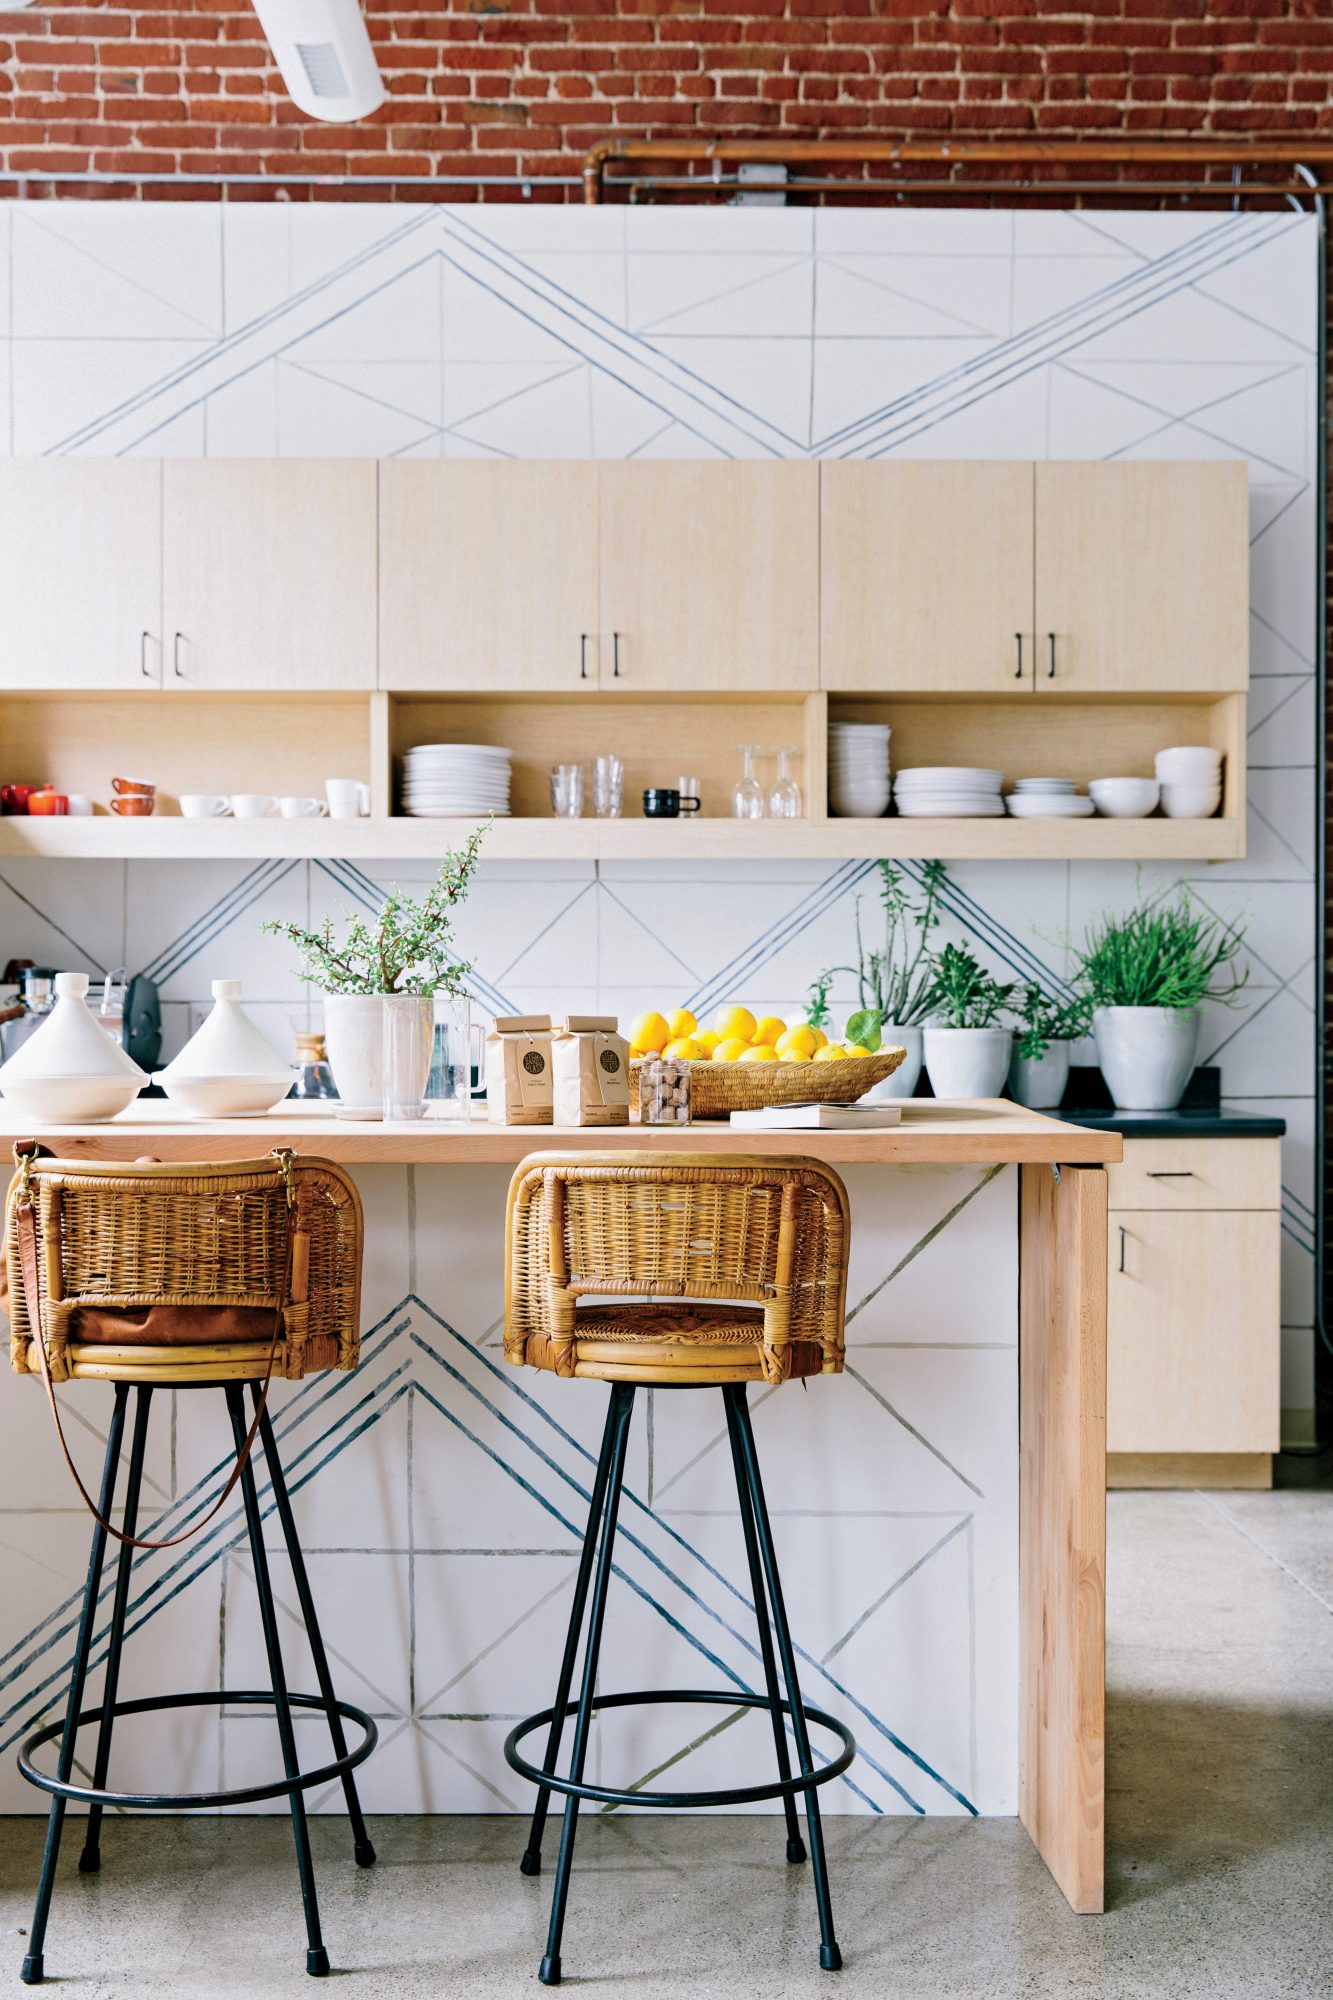 7. Kitchens with Character